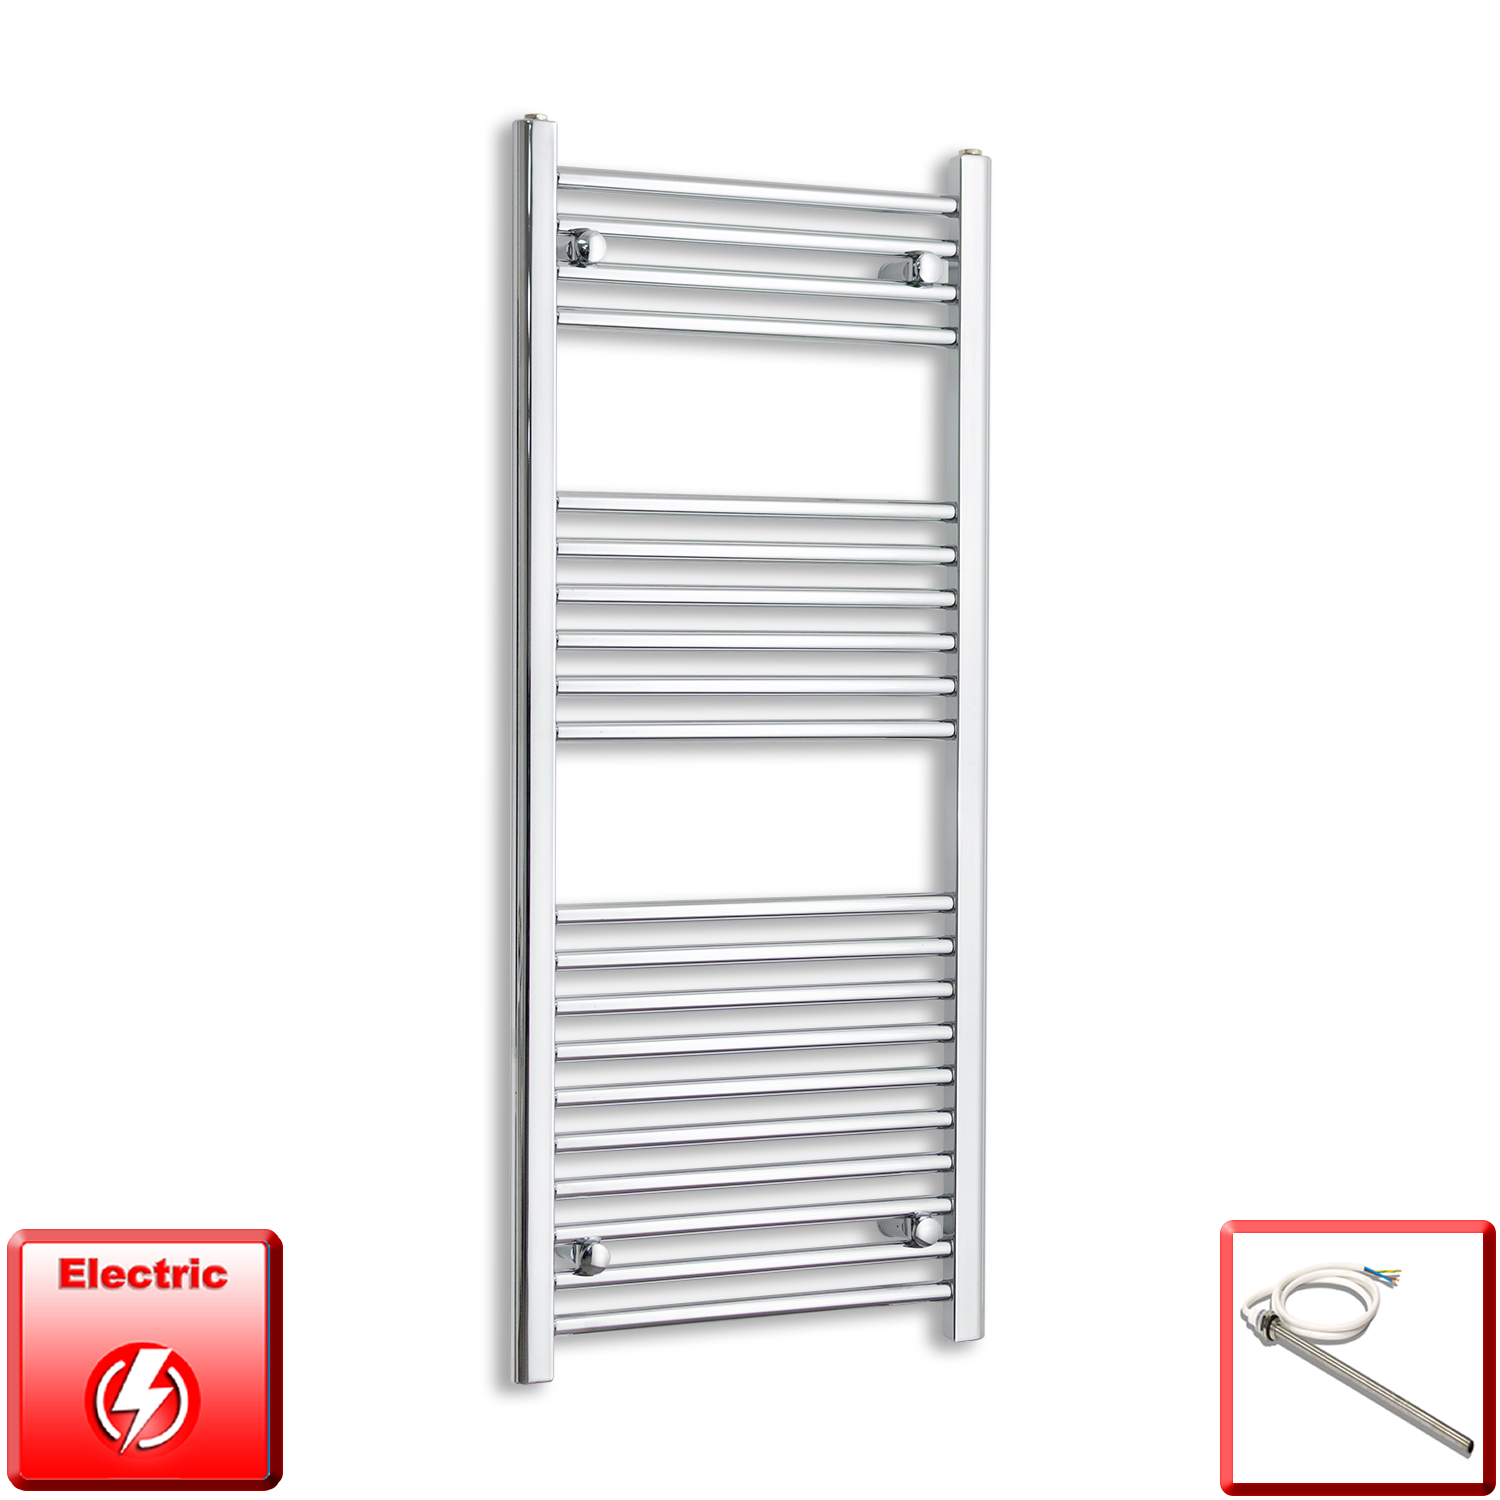 500mm Wide 1200mm High Flat or Curved Chrome Pre-Filled Electric Heated Towel Rail Radiator HTR,Single Heat Element